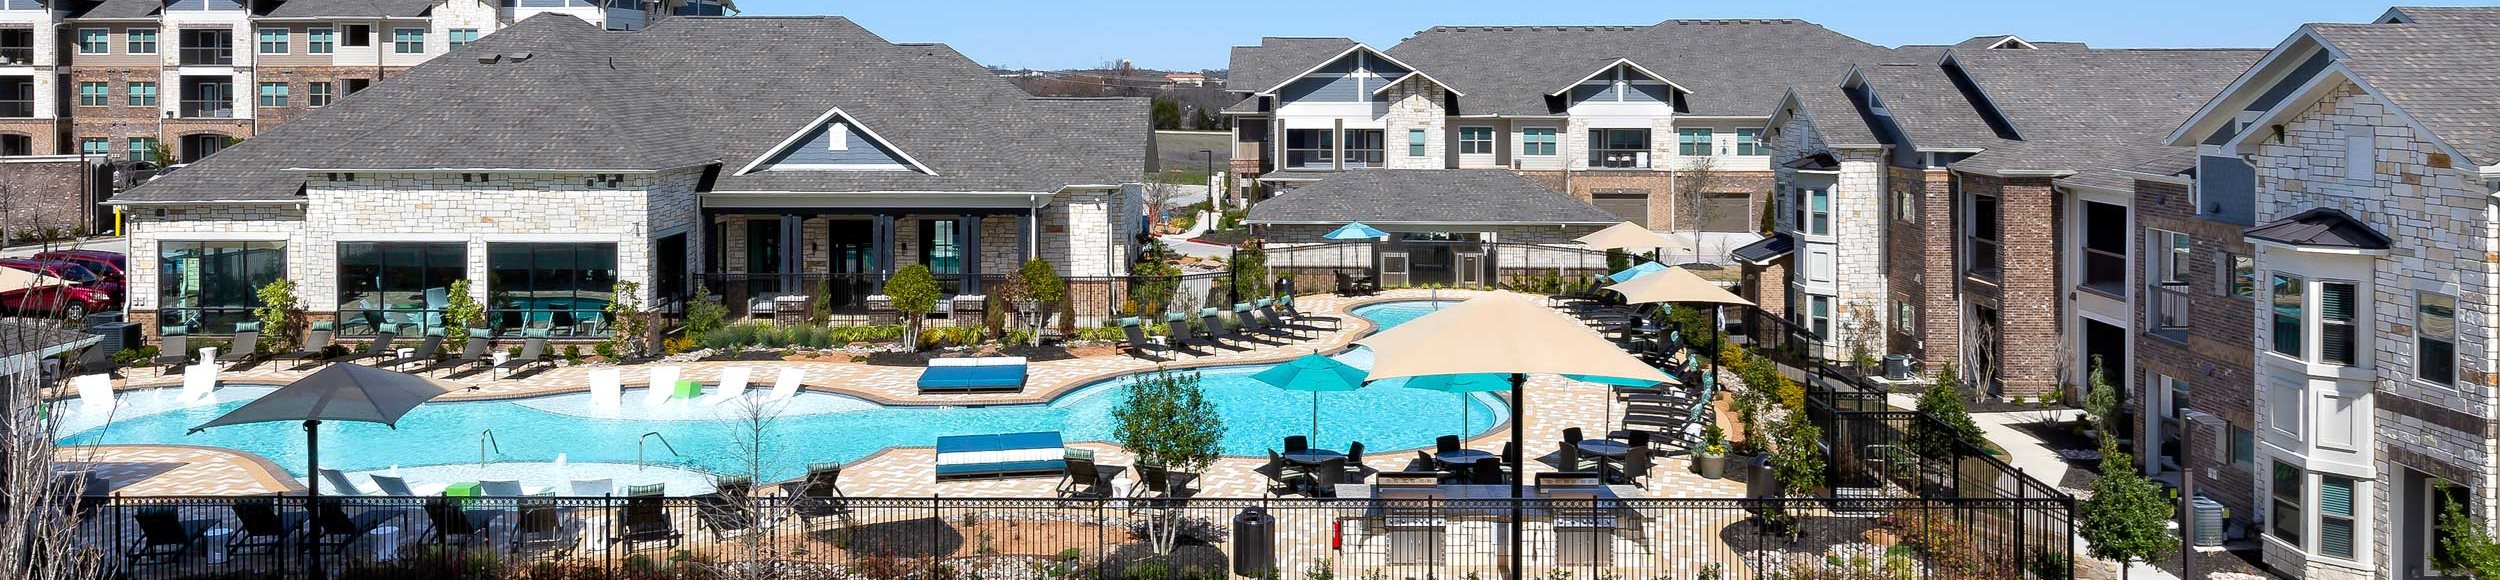 The Adley Craig Ranch Apartment Homes